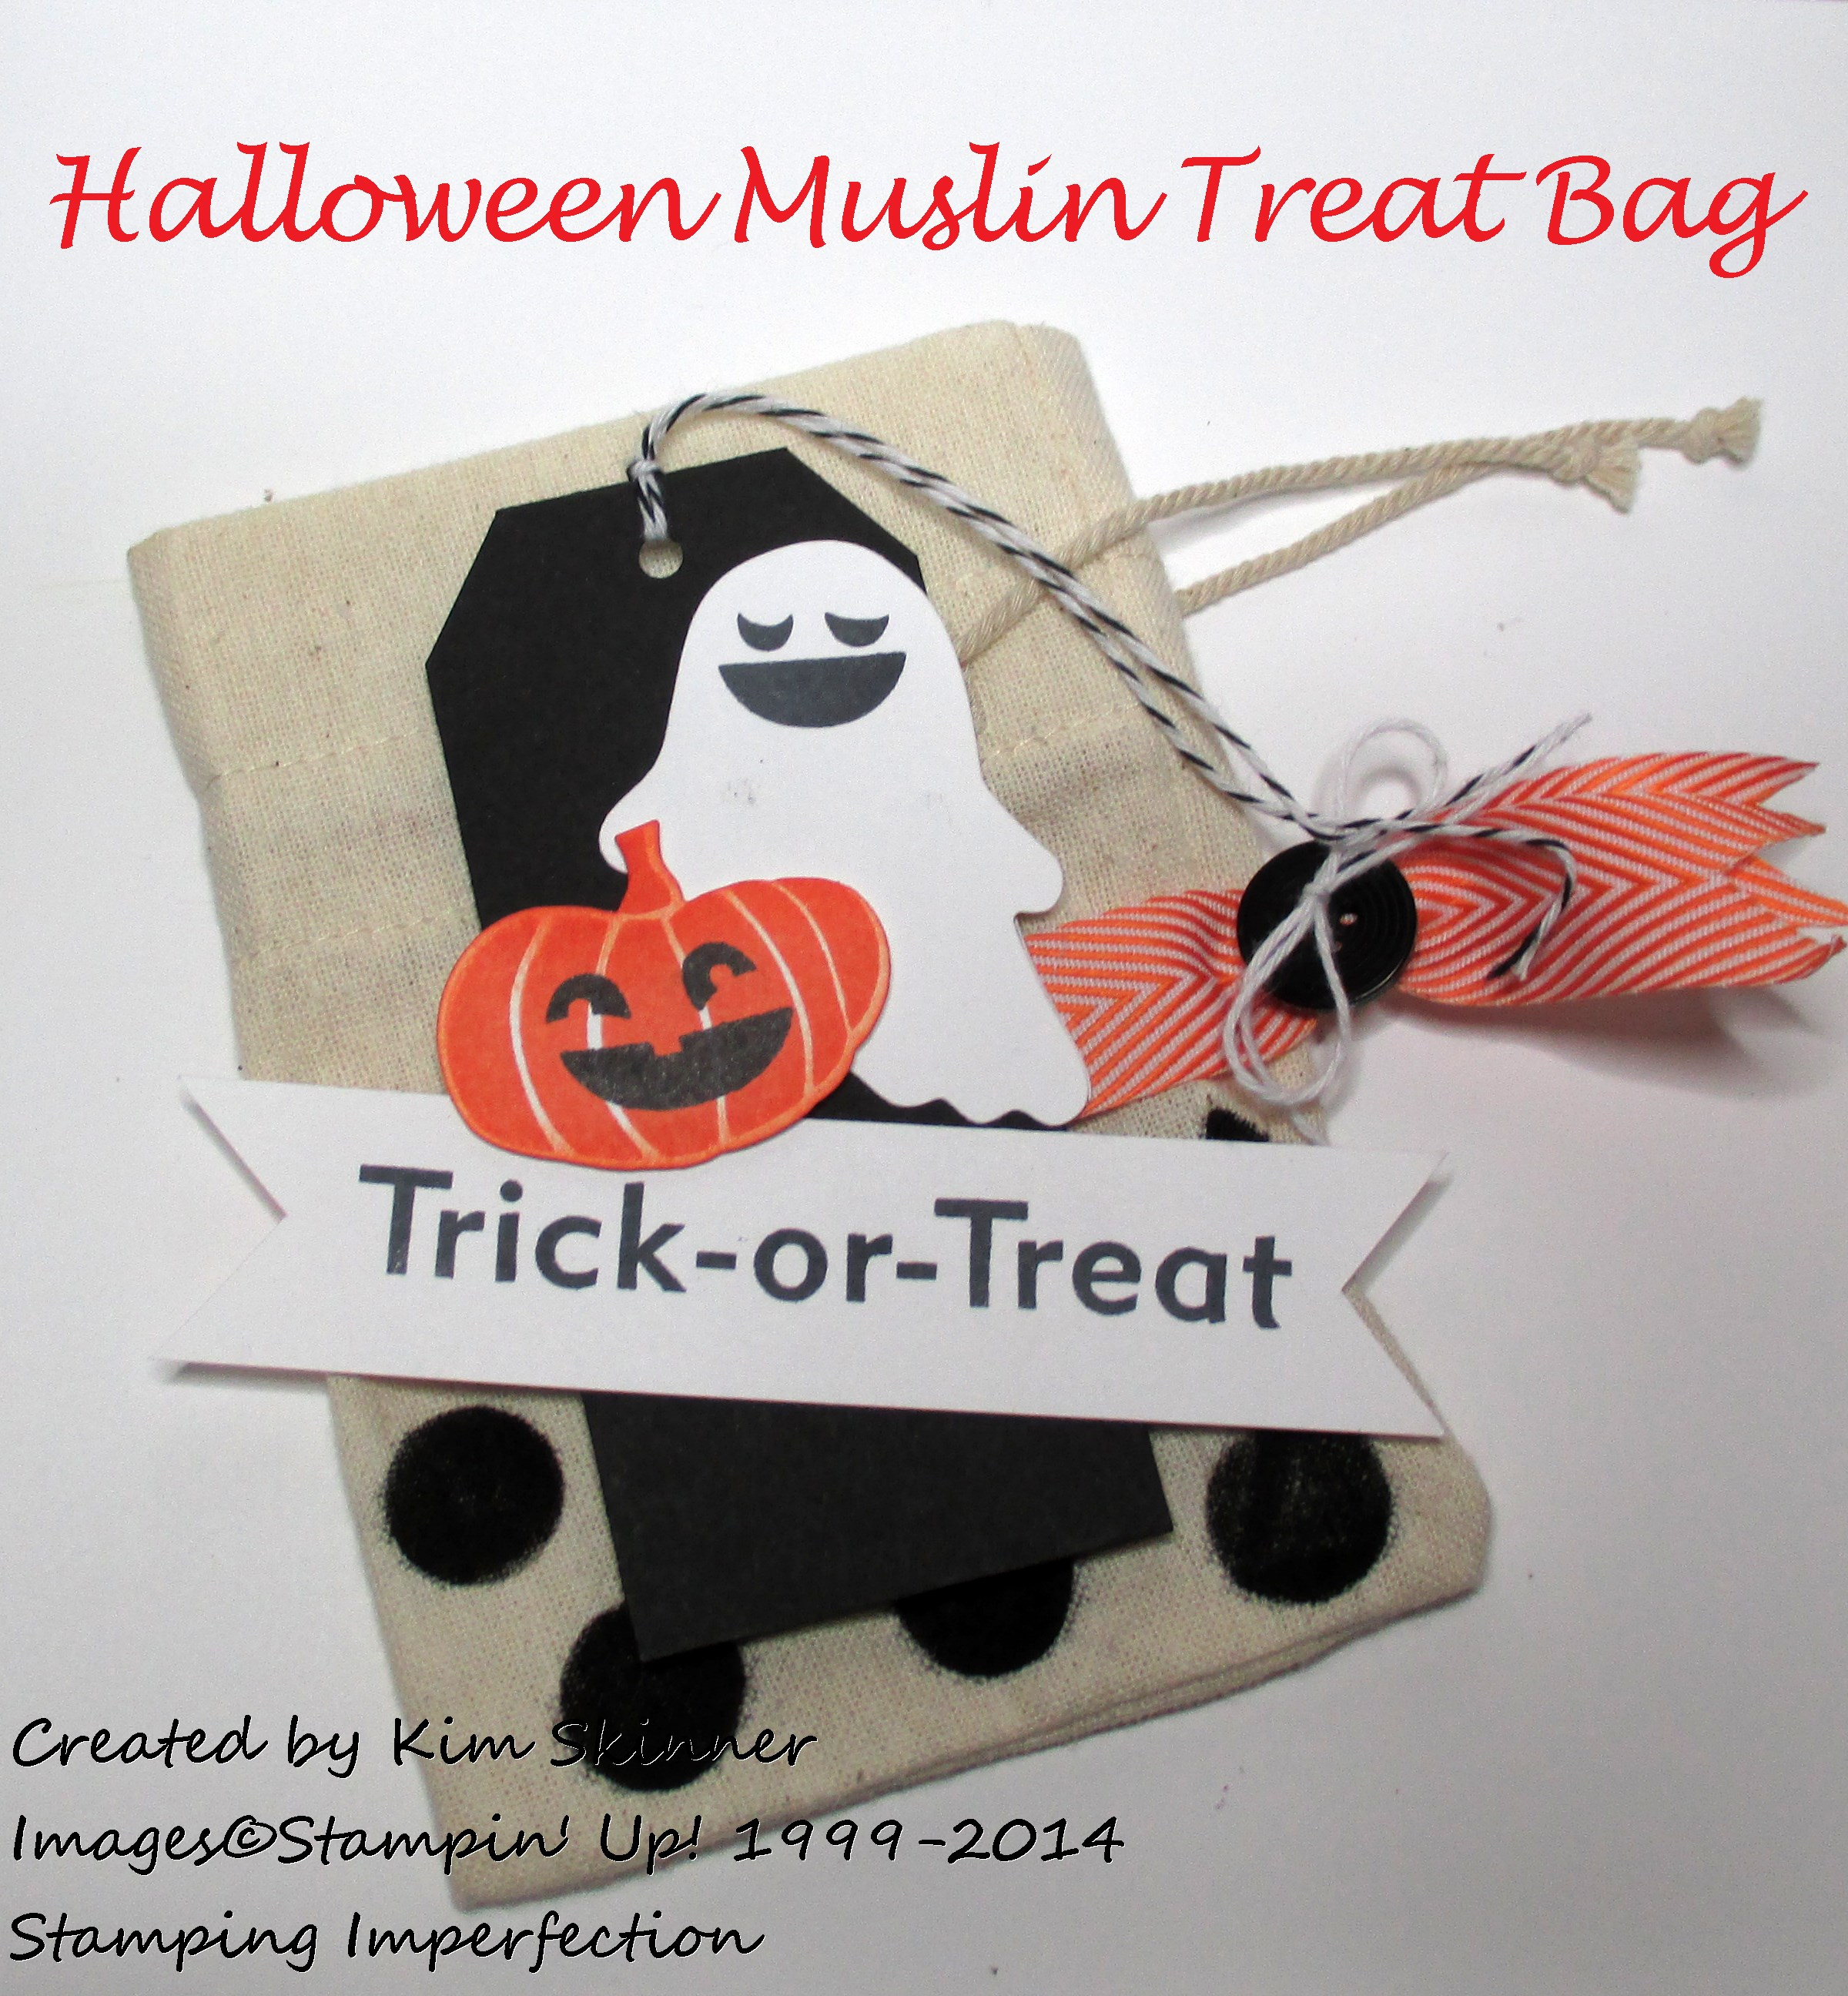 Create A Quick Muslin Treat Bag For Halloween!